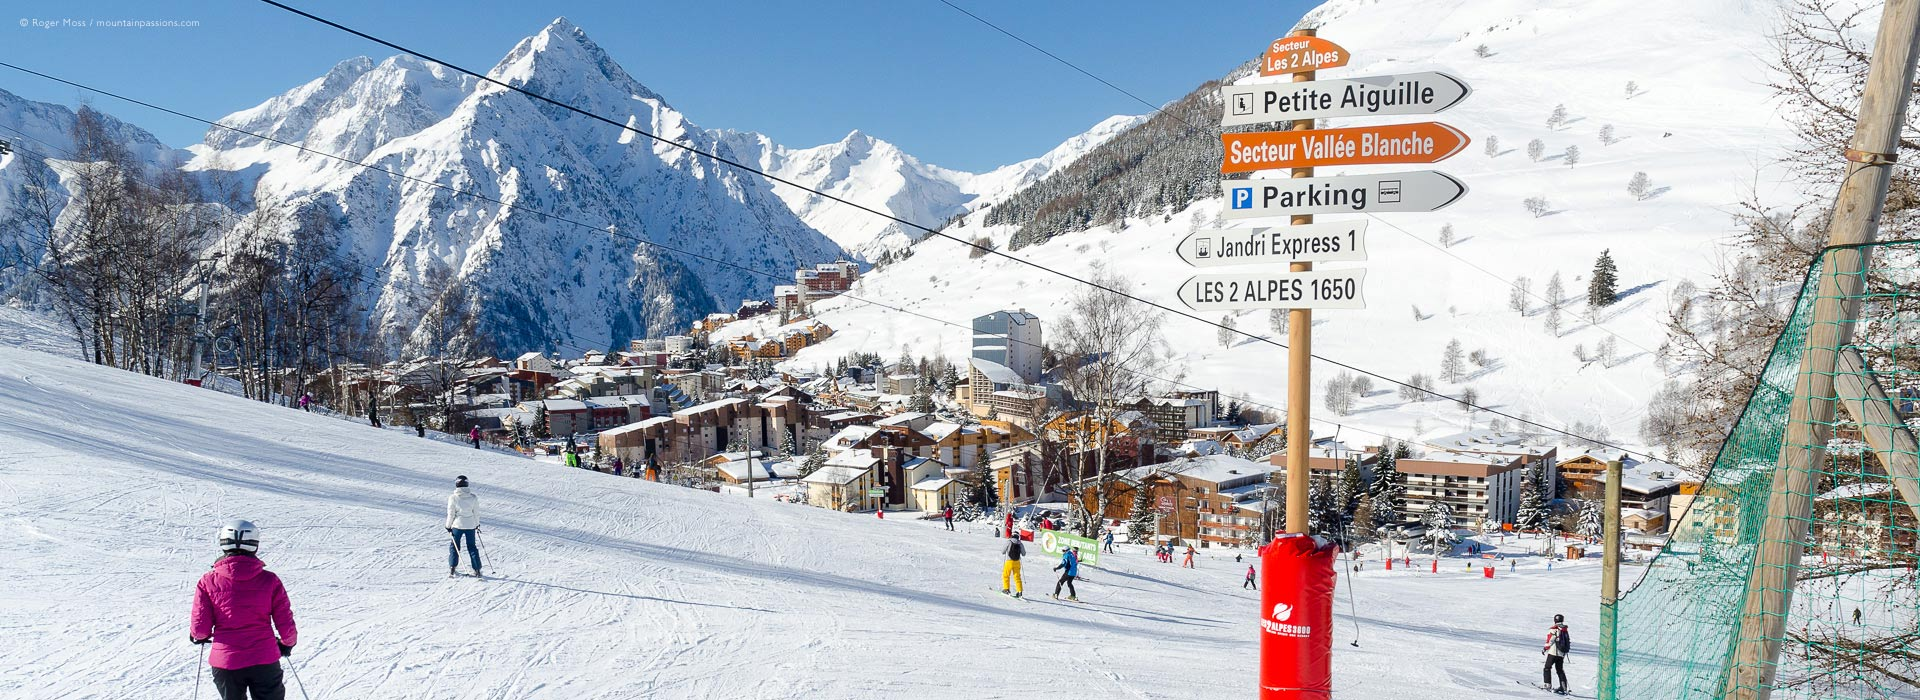 Wide view of skiers approaching ski lifts, with Les 2 Alpes ski village and mountains